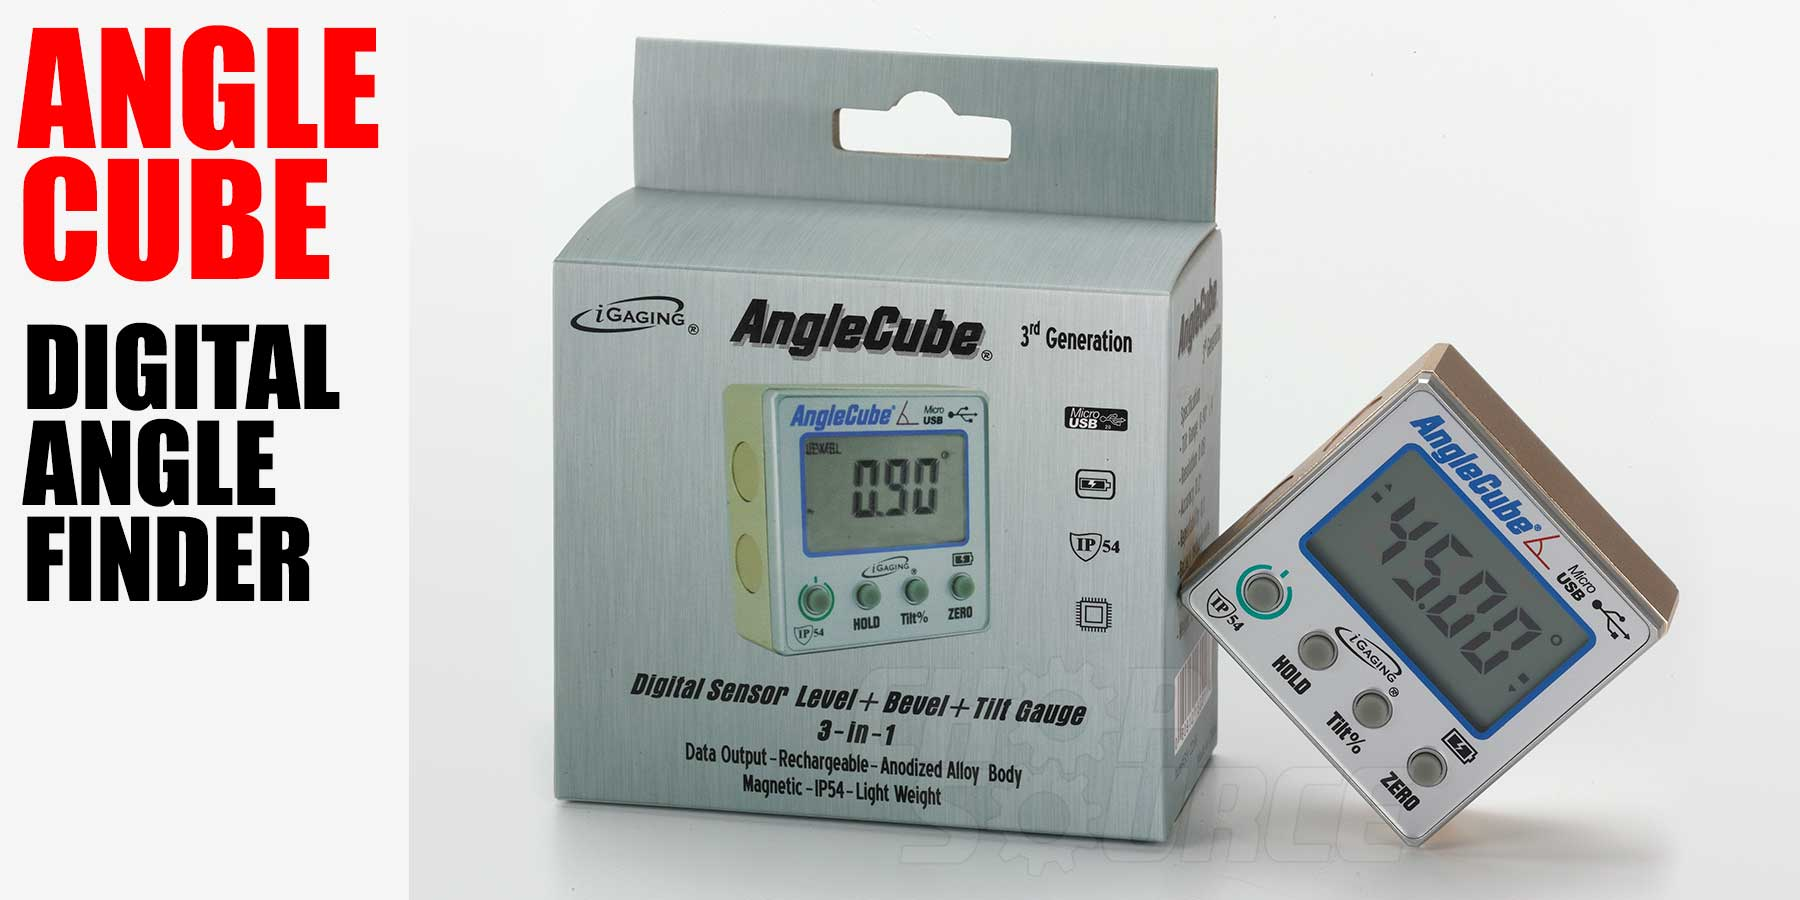 AngleCube Digital Angle Finder